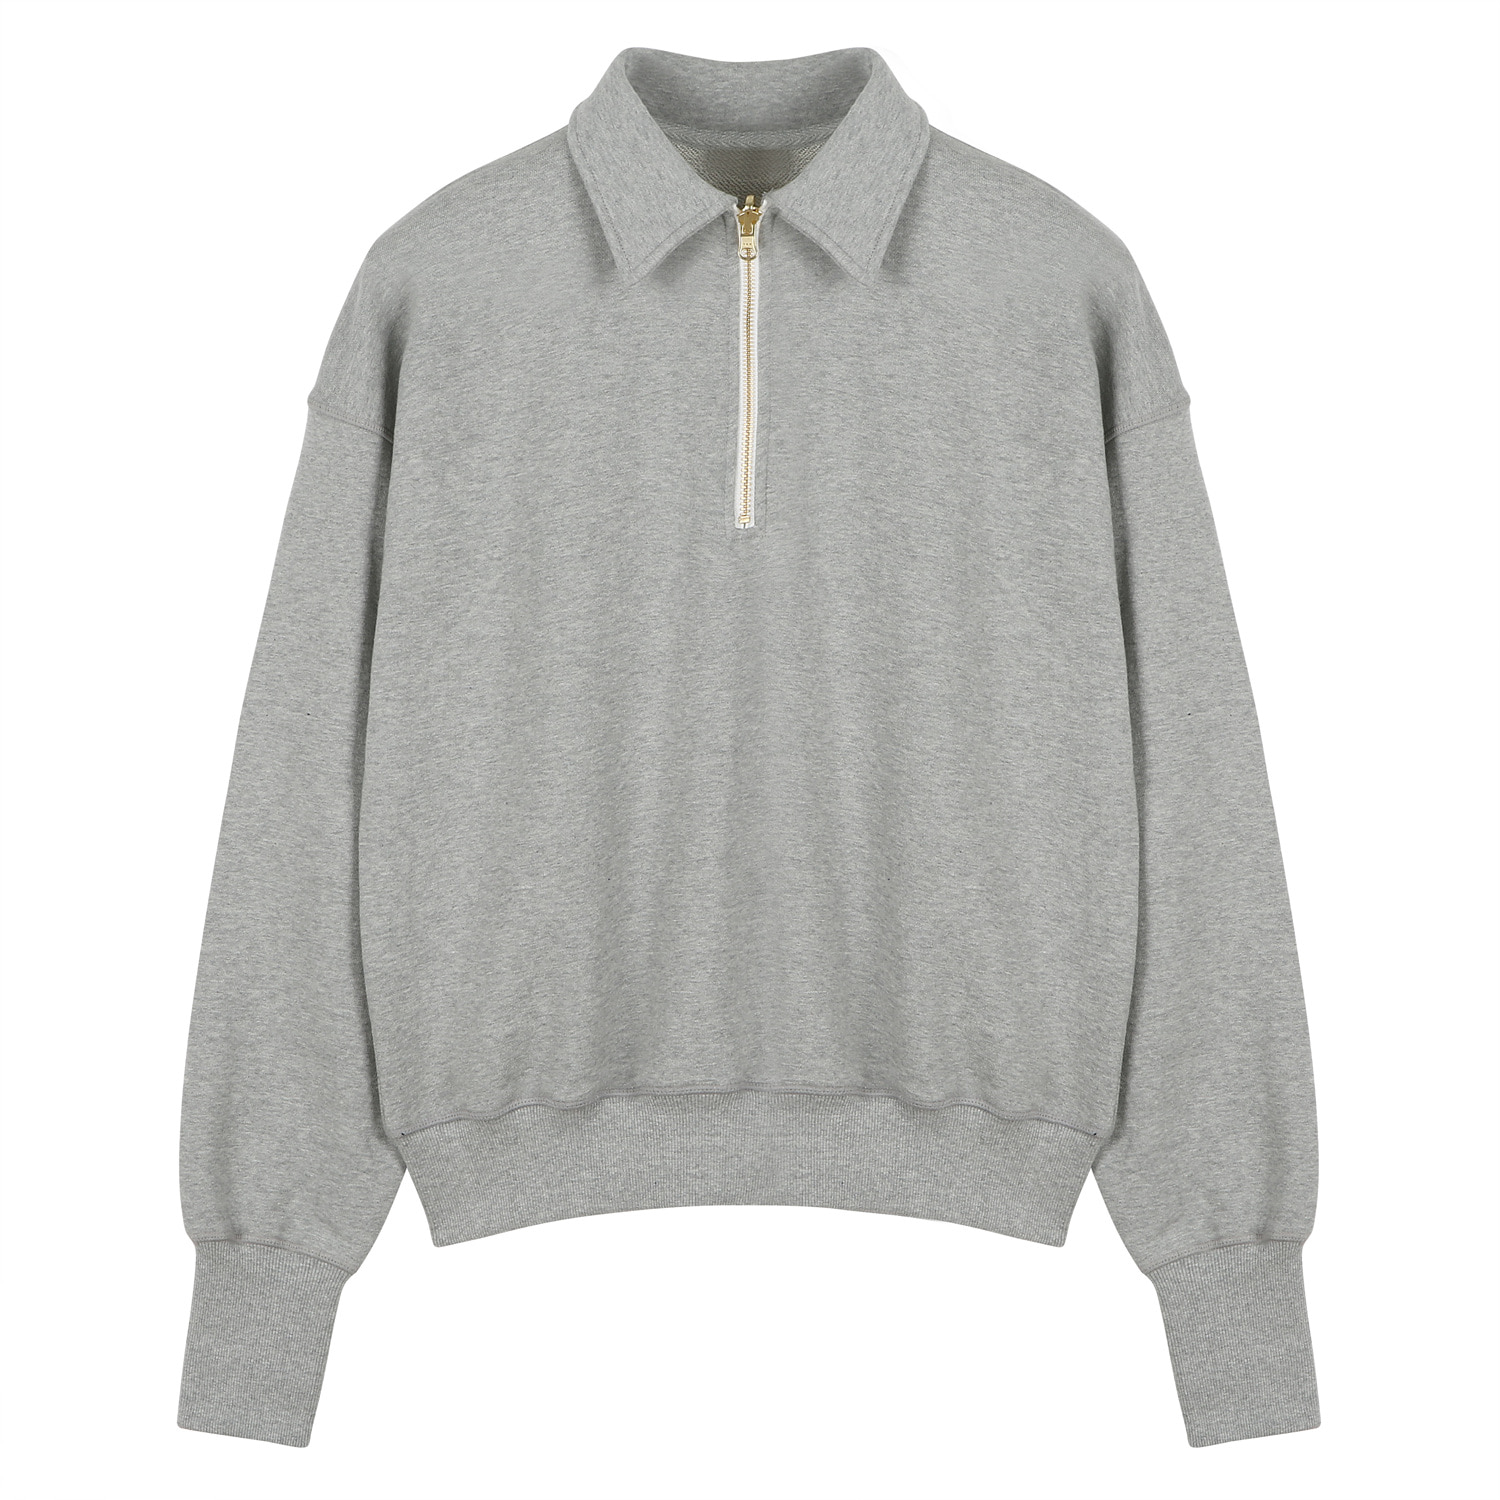 7th RE) ORE COTTON 001 zip-up M.Grey